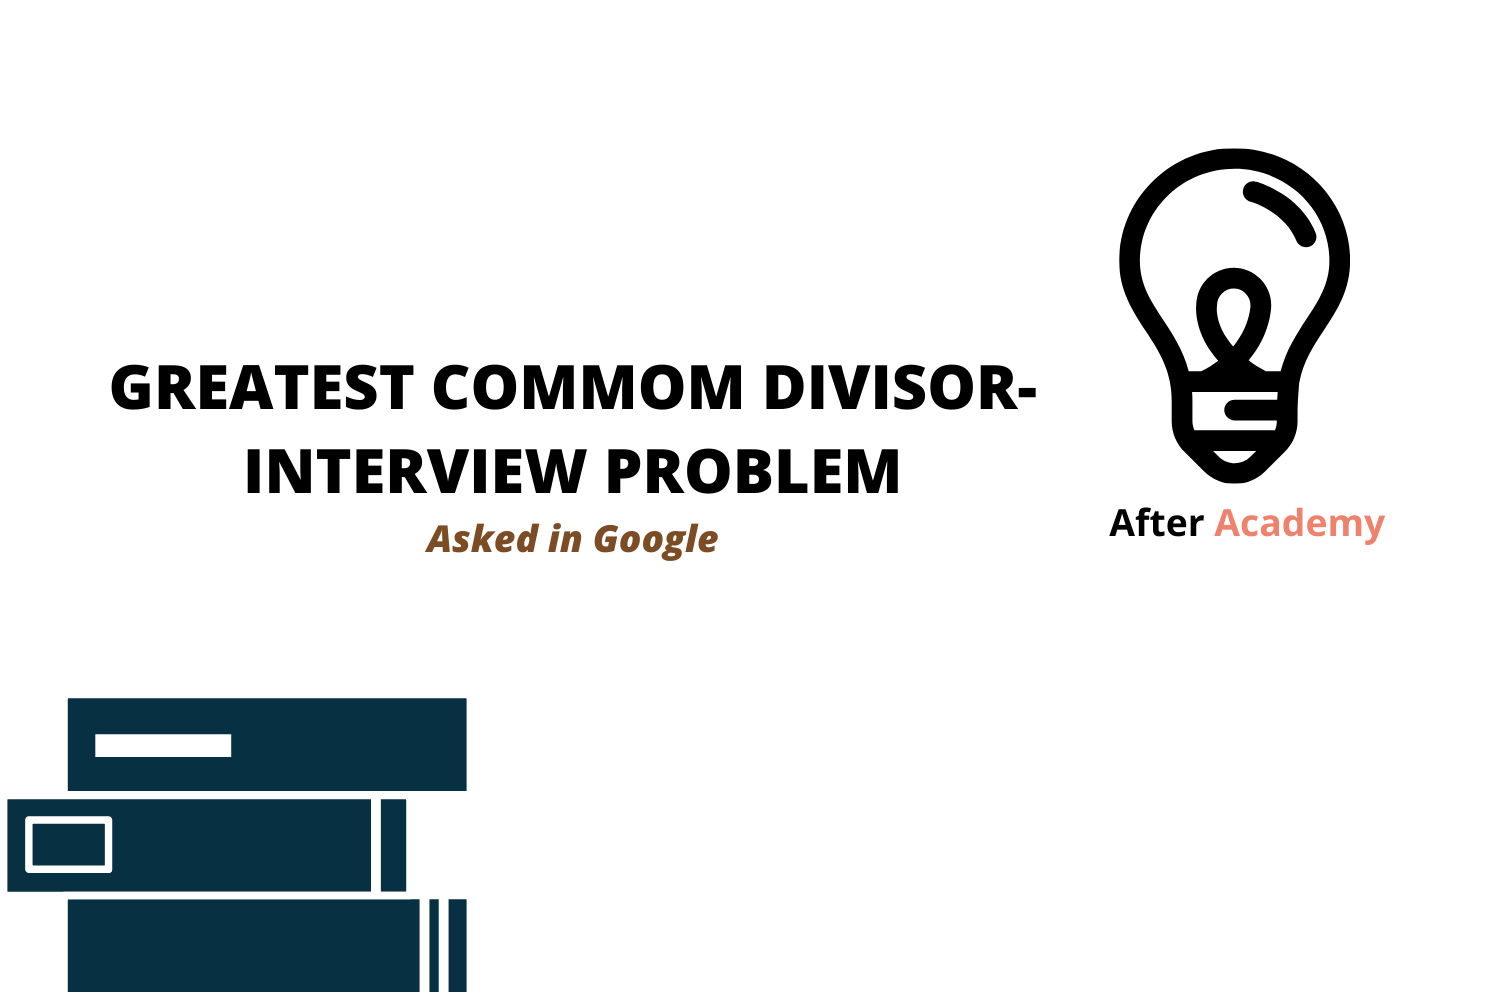 Greatest Common Divisor-Interview Problem